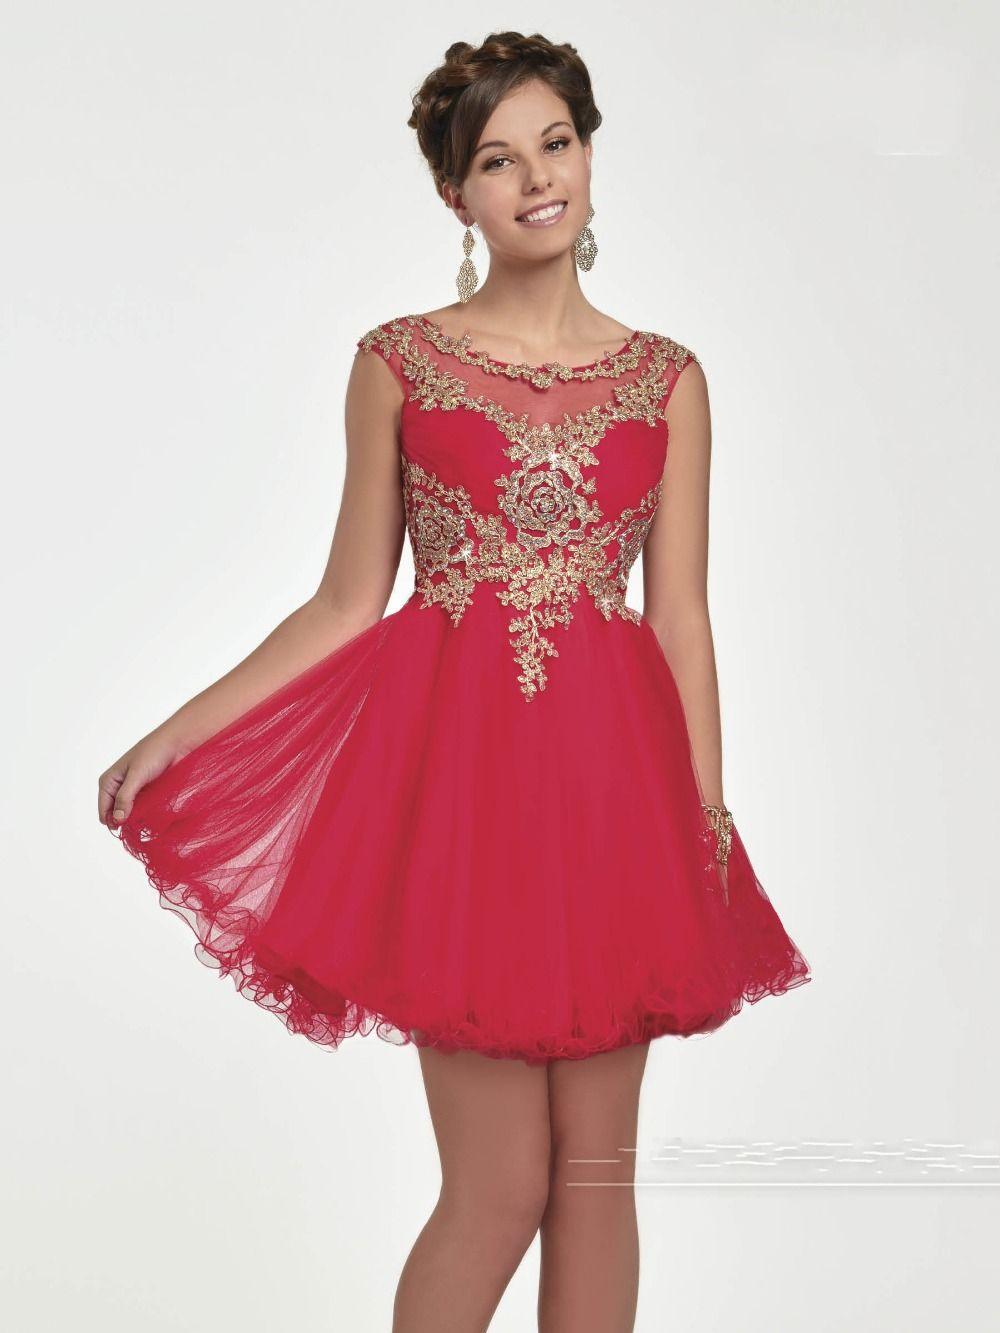 Red With Gold Lace Homecoming Dresses Short Prom Dress High School ...